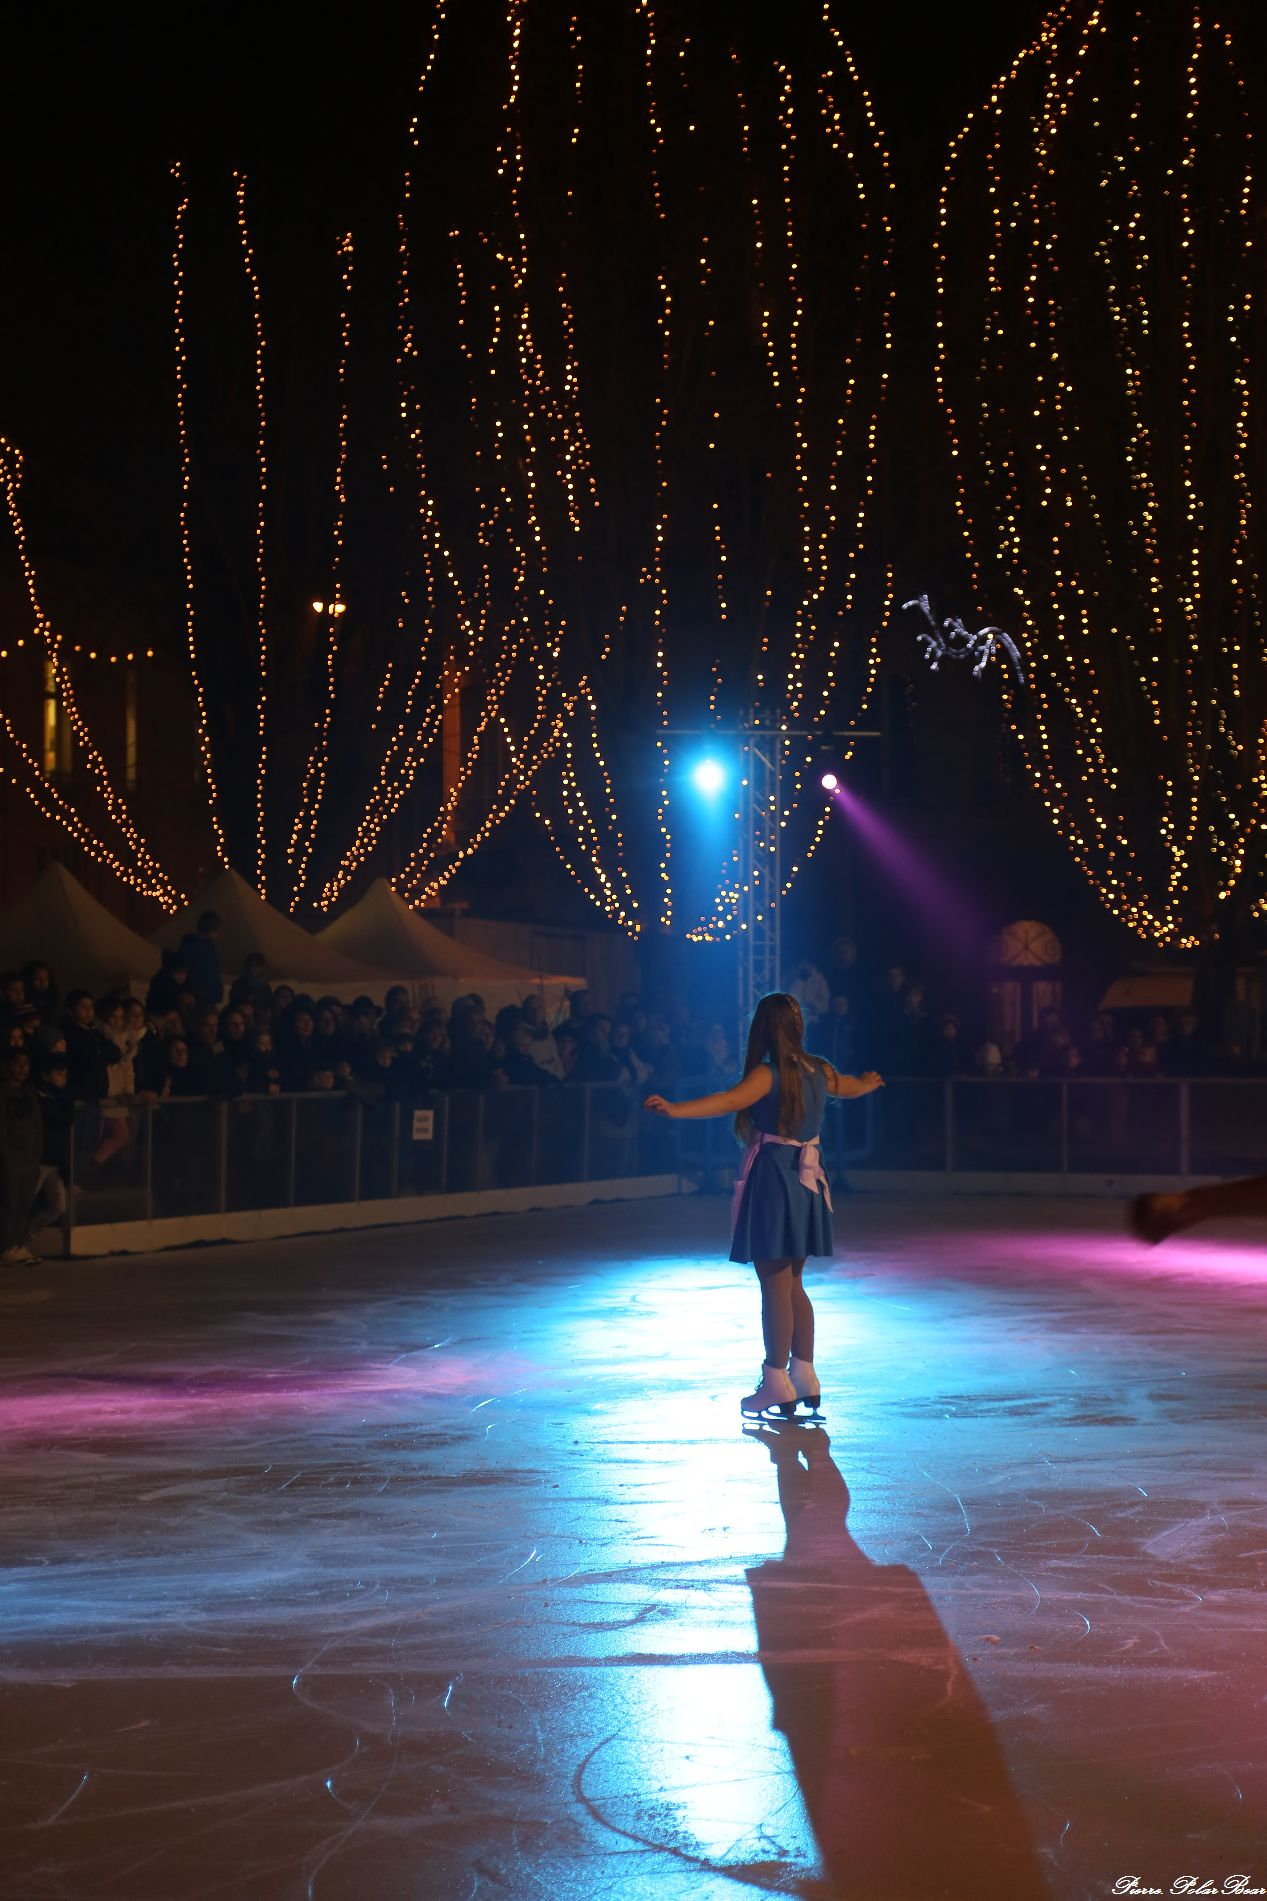 20161202-Patinoire-14